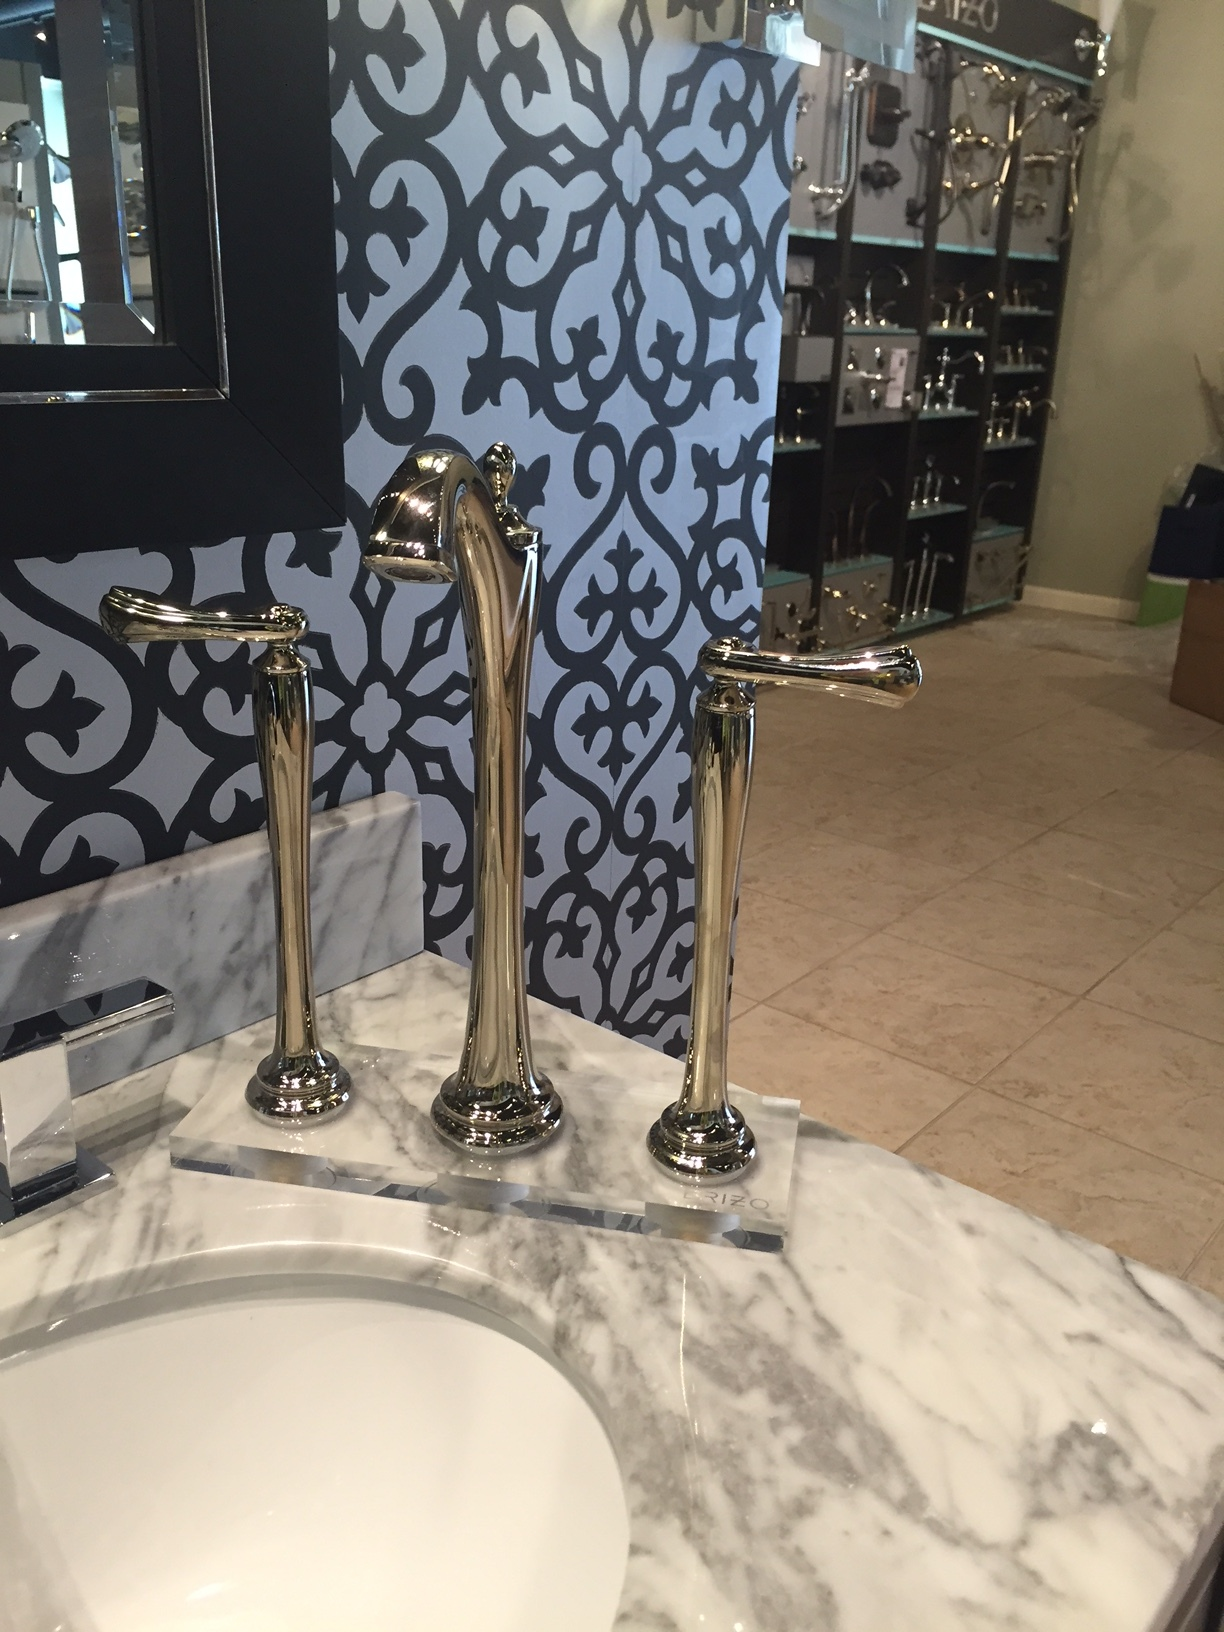 This was the faucet at the showroom. I took the display model and put it atop a sink to see how it might look.